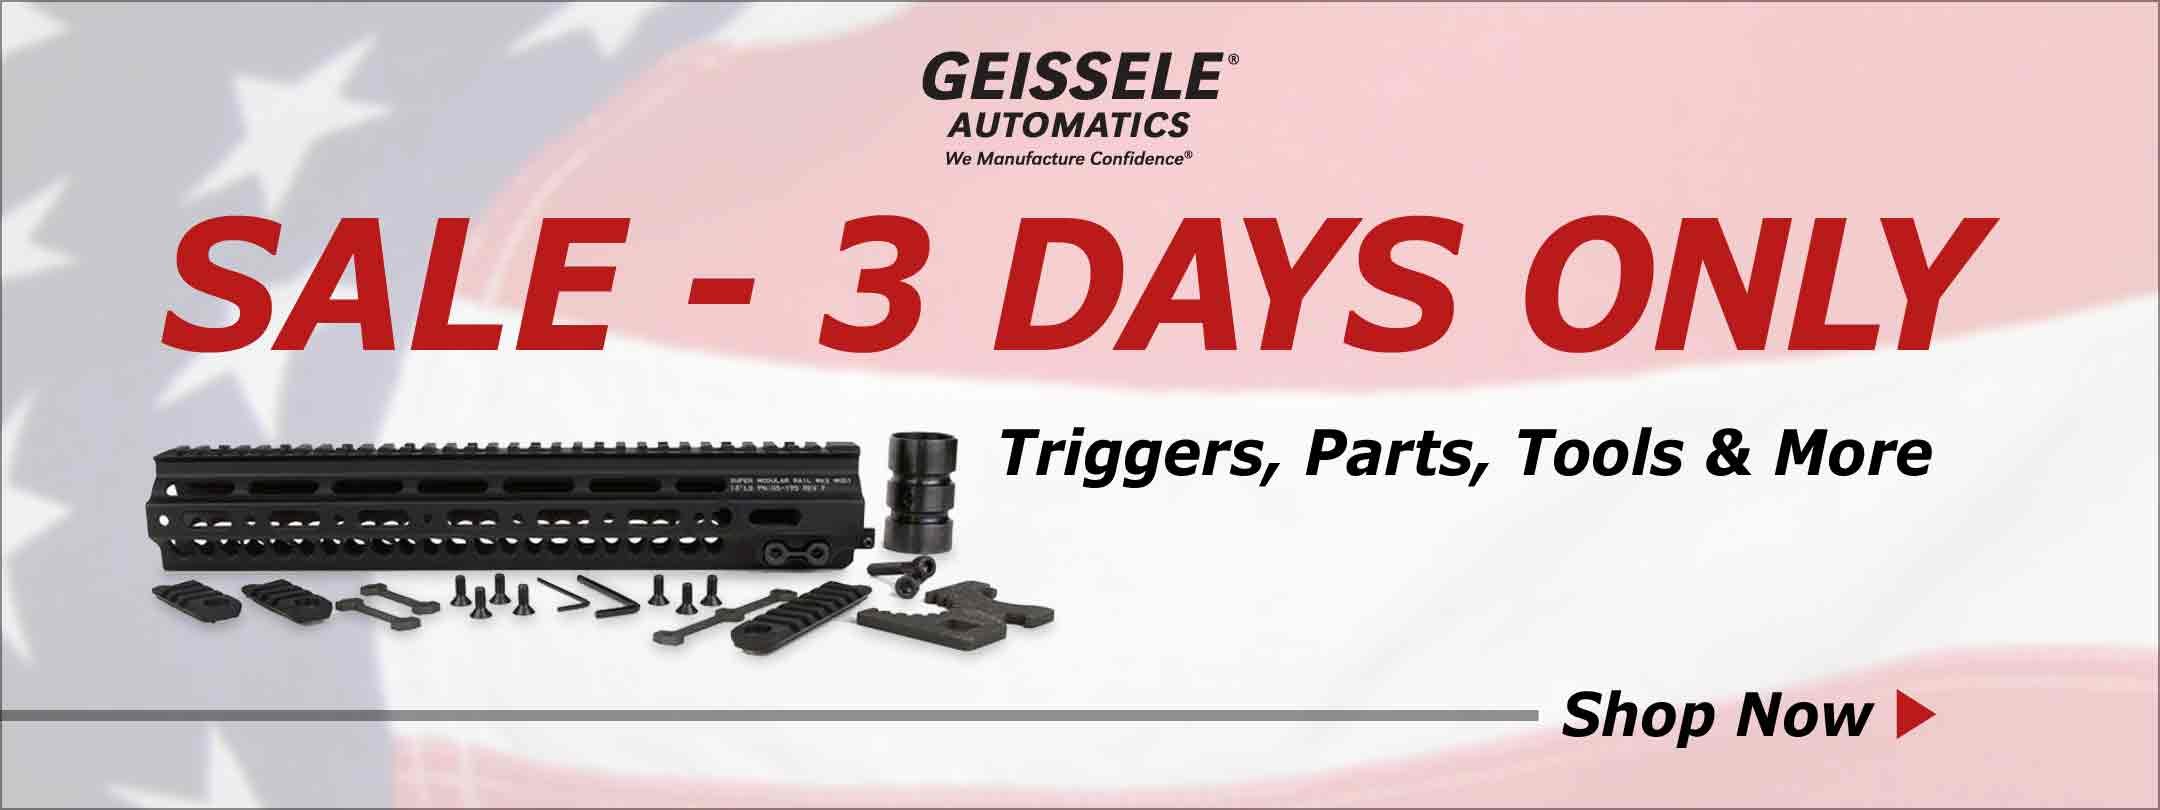 Only 3 Days to Save on Geissele